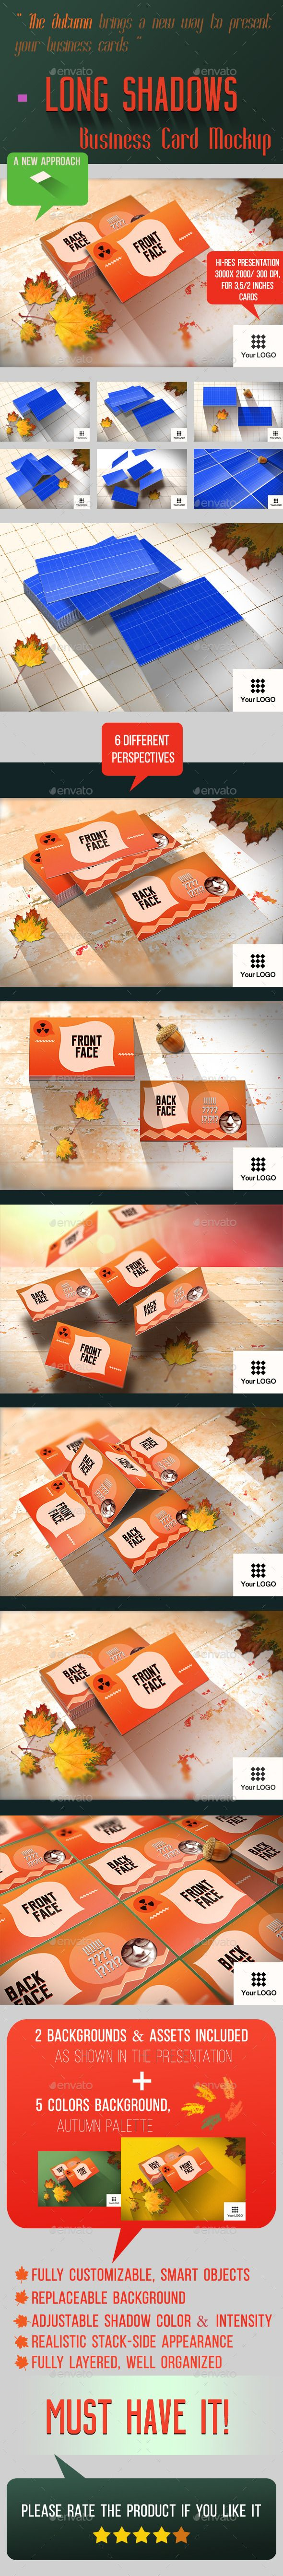 Long Shadows Business Card Mockup